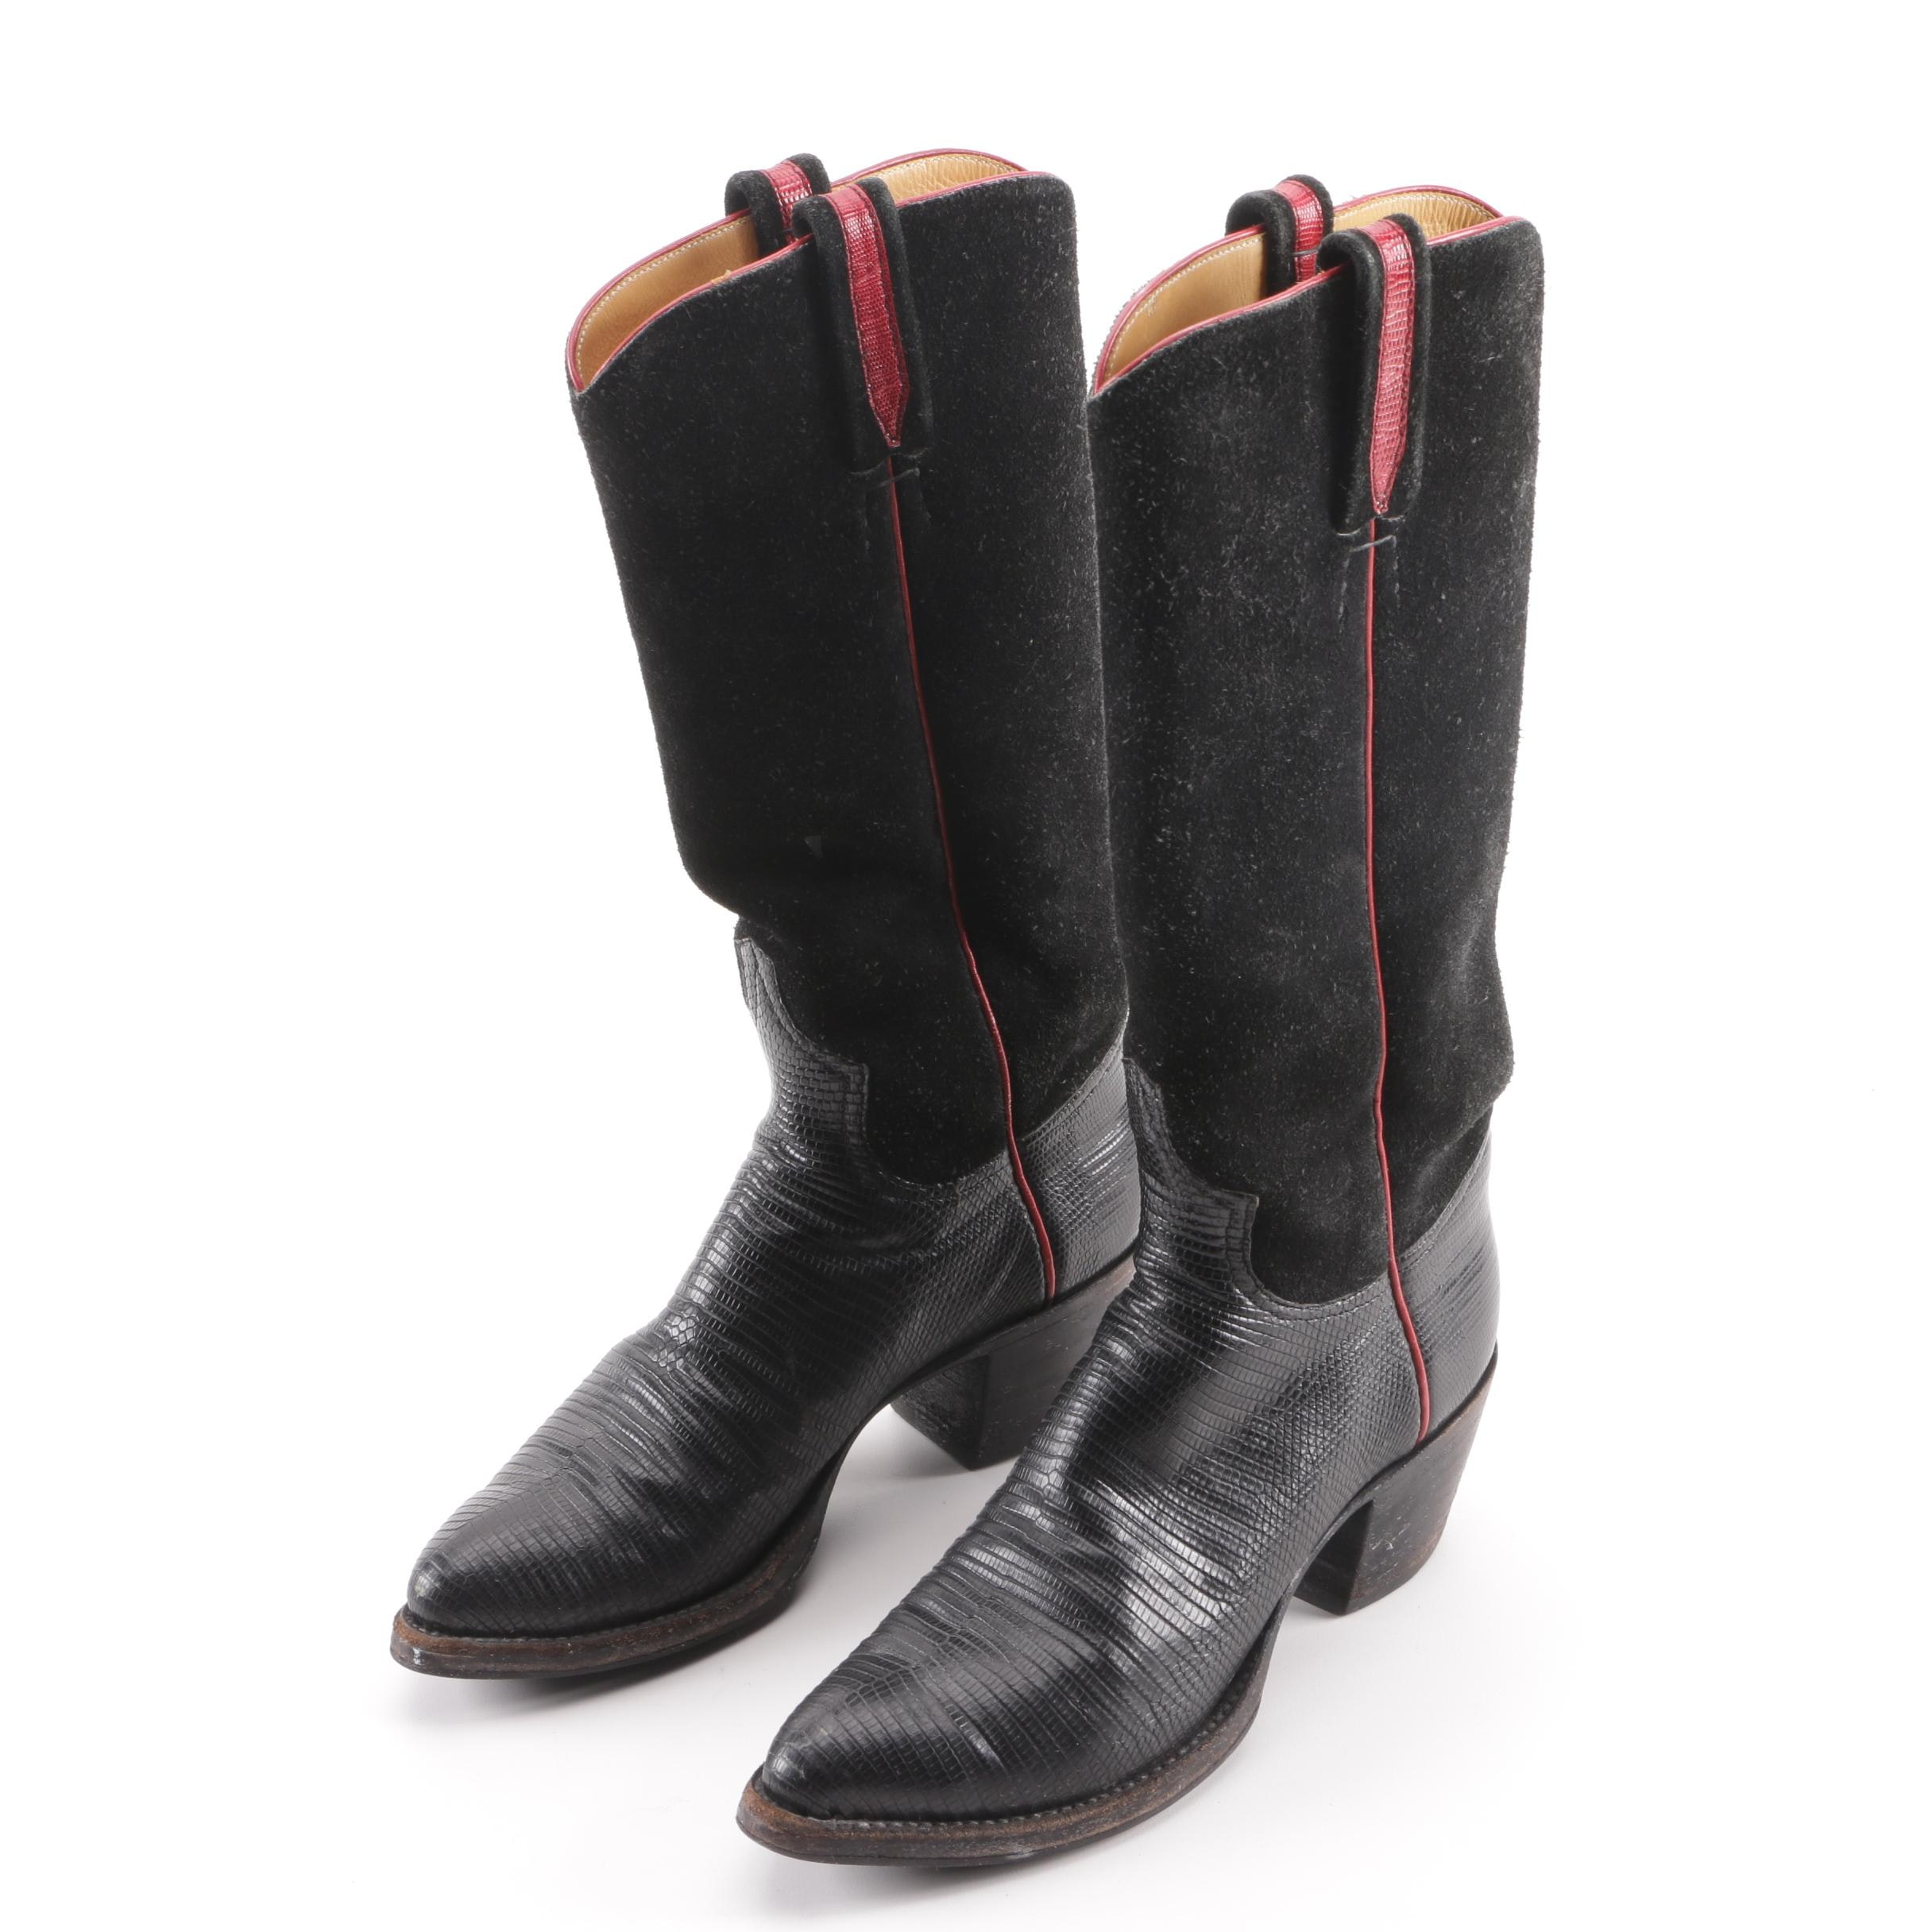 Women's Handcrafted Italian Made Lizard and Suede Western Boots